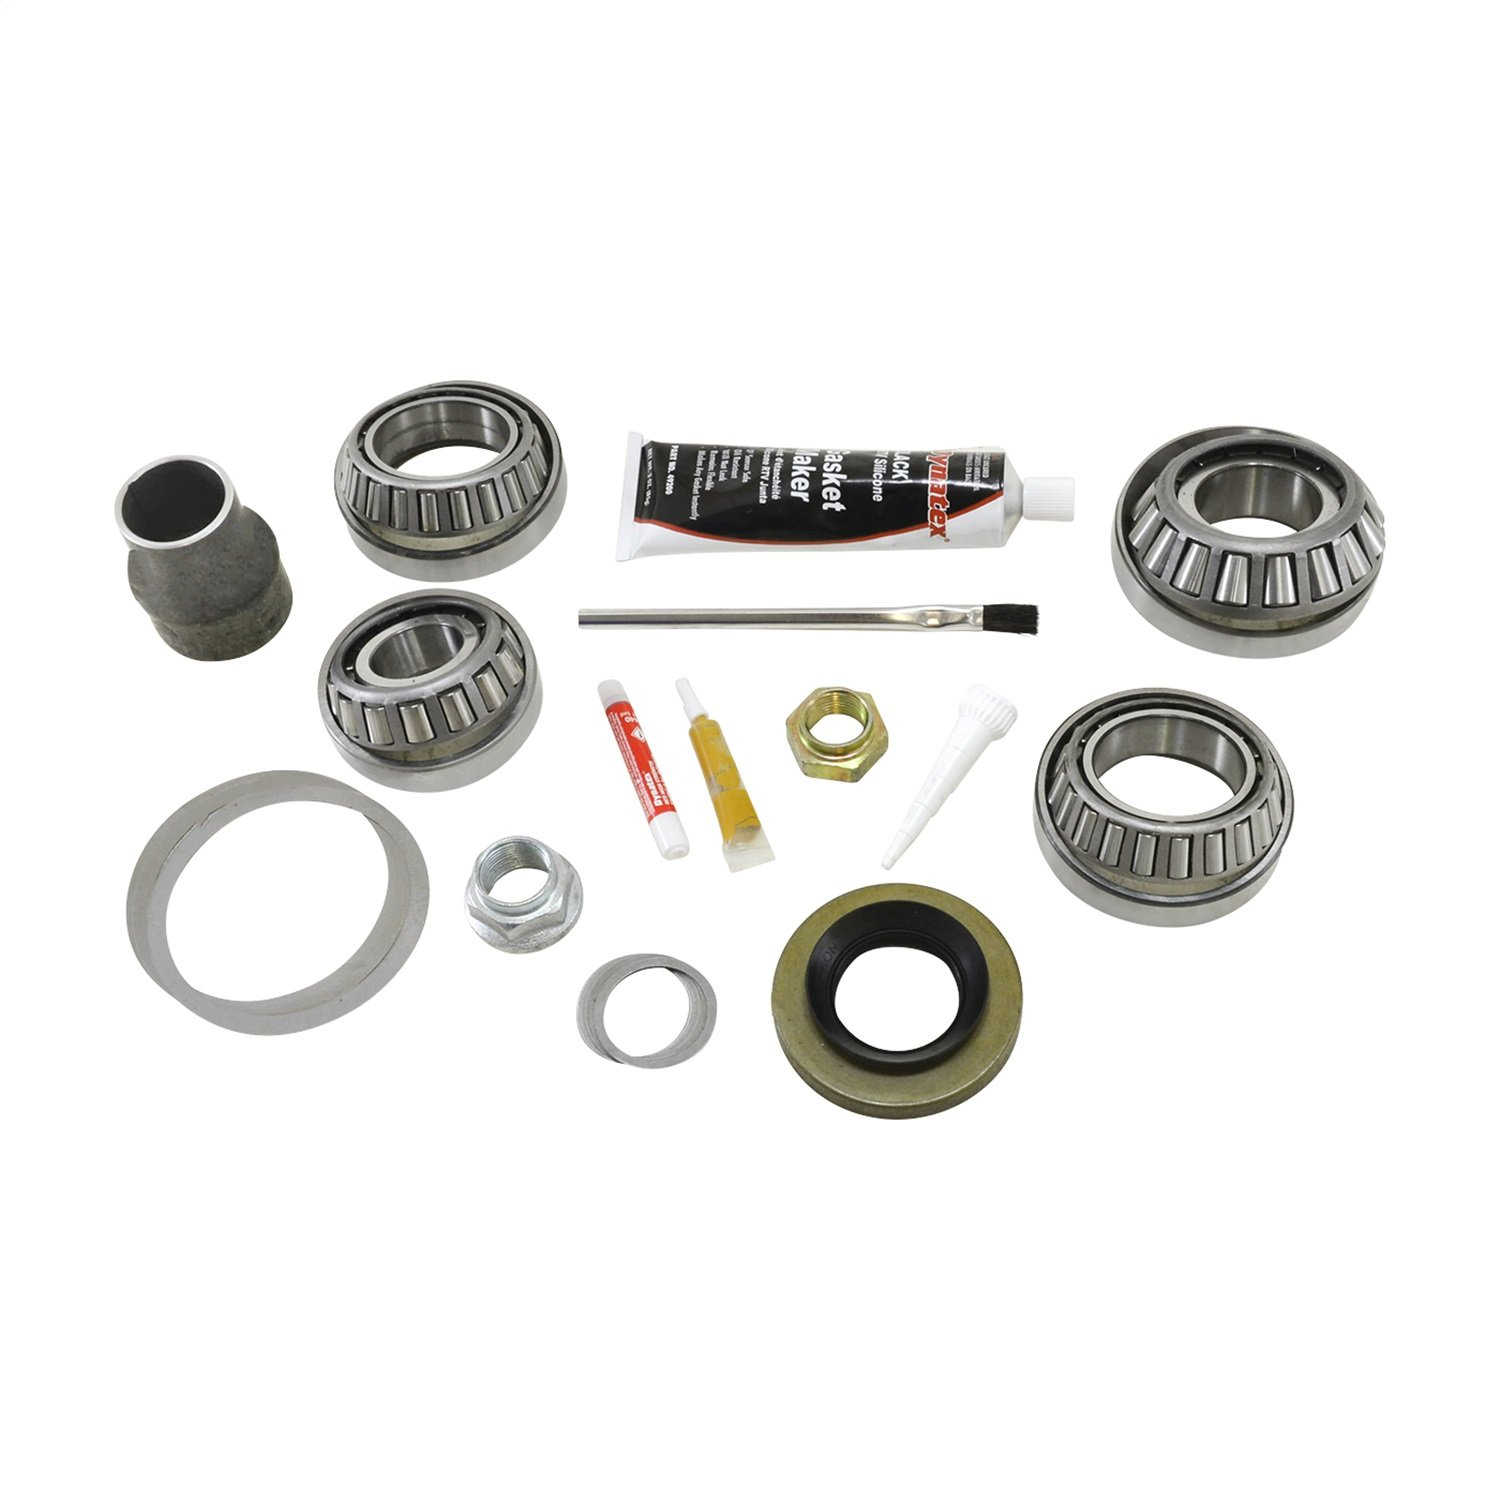 USA Standard Gear (ZK TLC-A) Master Overhaul Kit for Toyota Land Cruiser Differential